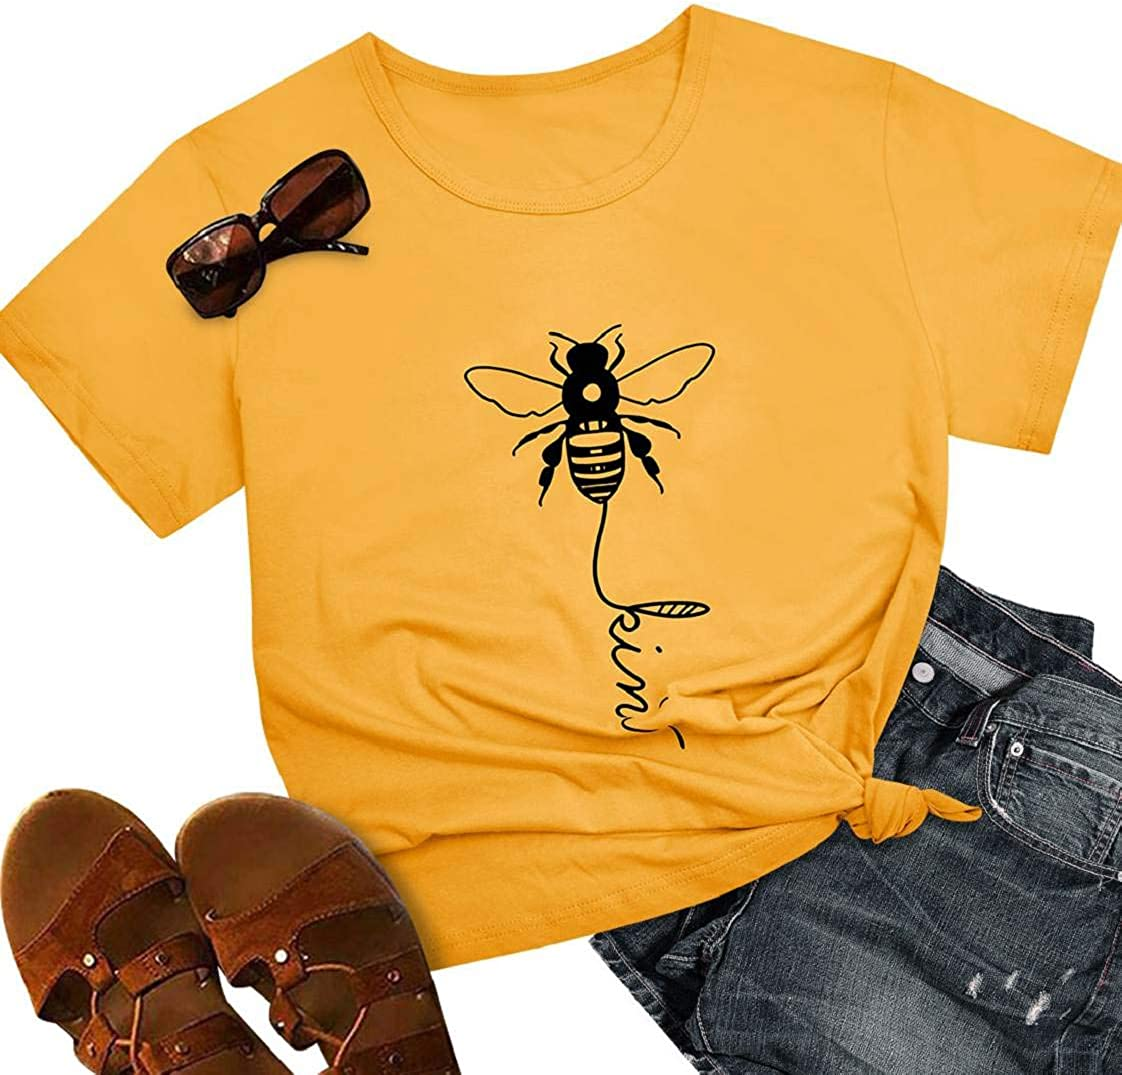 CMTOP Women Bee Kind T-Shirt Ladies Bee Graphic Shirt Crew Neck Short Sleeve Summer Tee Print Tops Slouch Blouse Loose Fit Casual Pullover Tees Tops for Outdoor Crew Neck